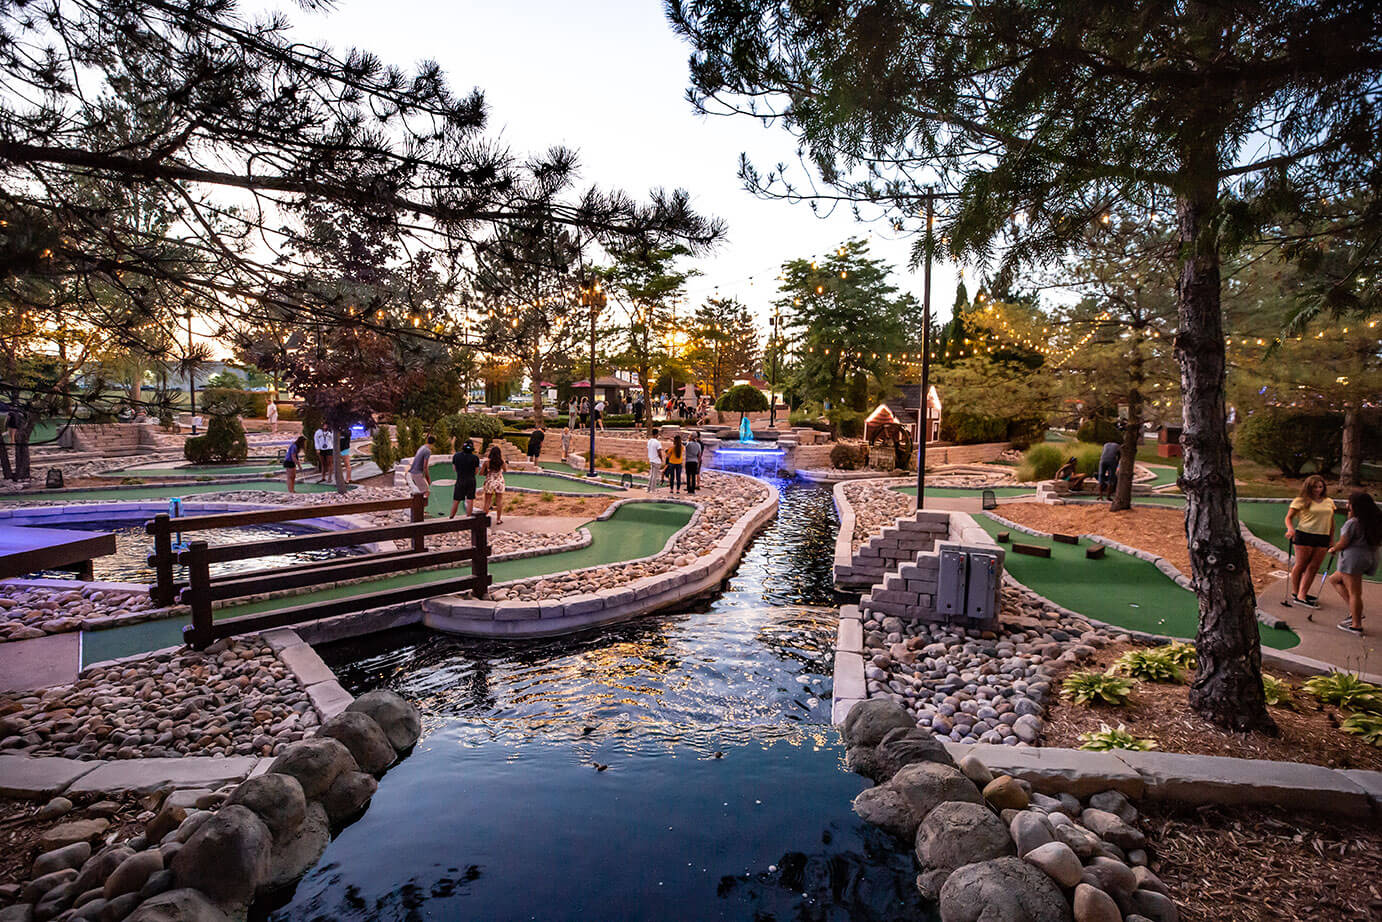 https://cjbarrymores.com/attractions/outdoor/miniature-golf/